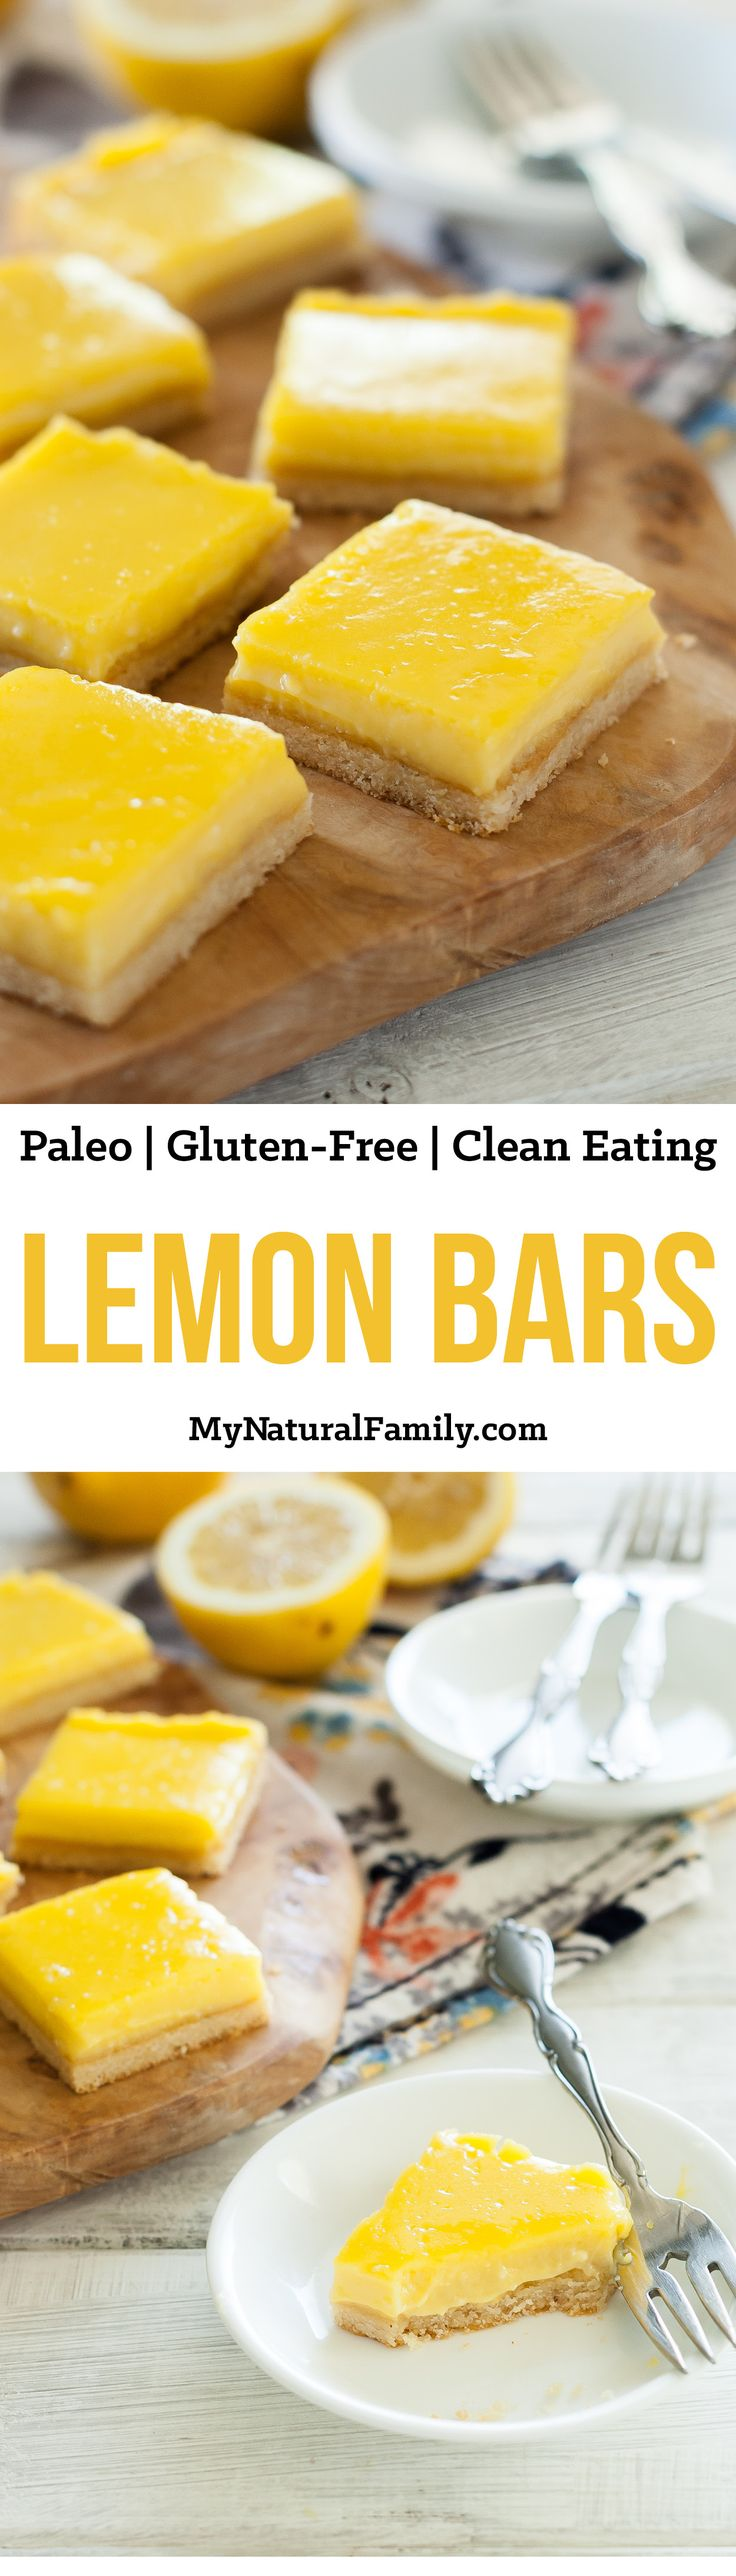 Gluten-Free Lemon Bars Recipe {Paleo, Clean Eating, Gluten-Free}